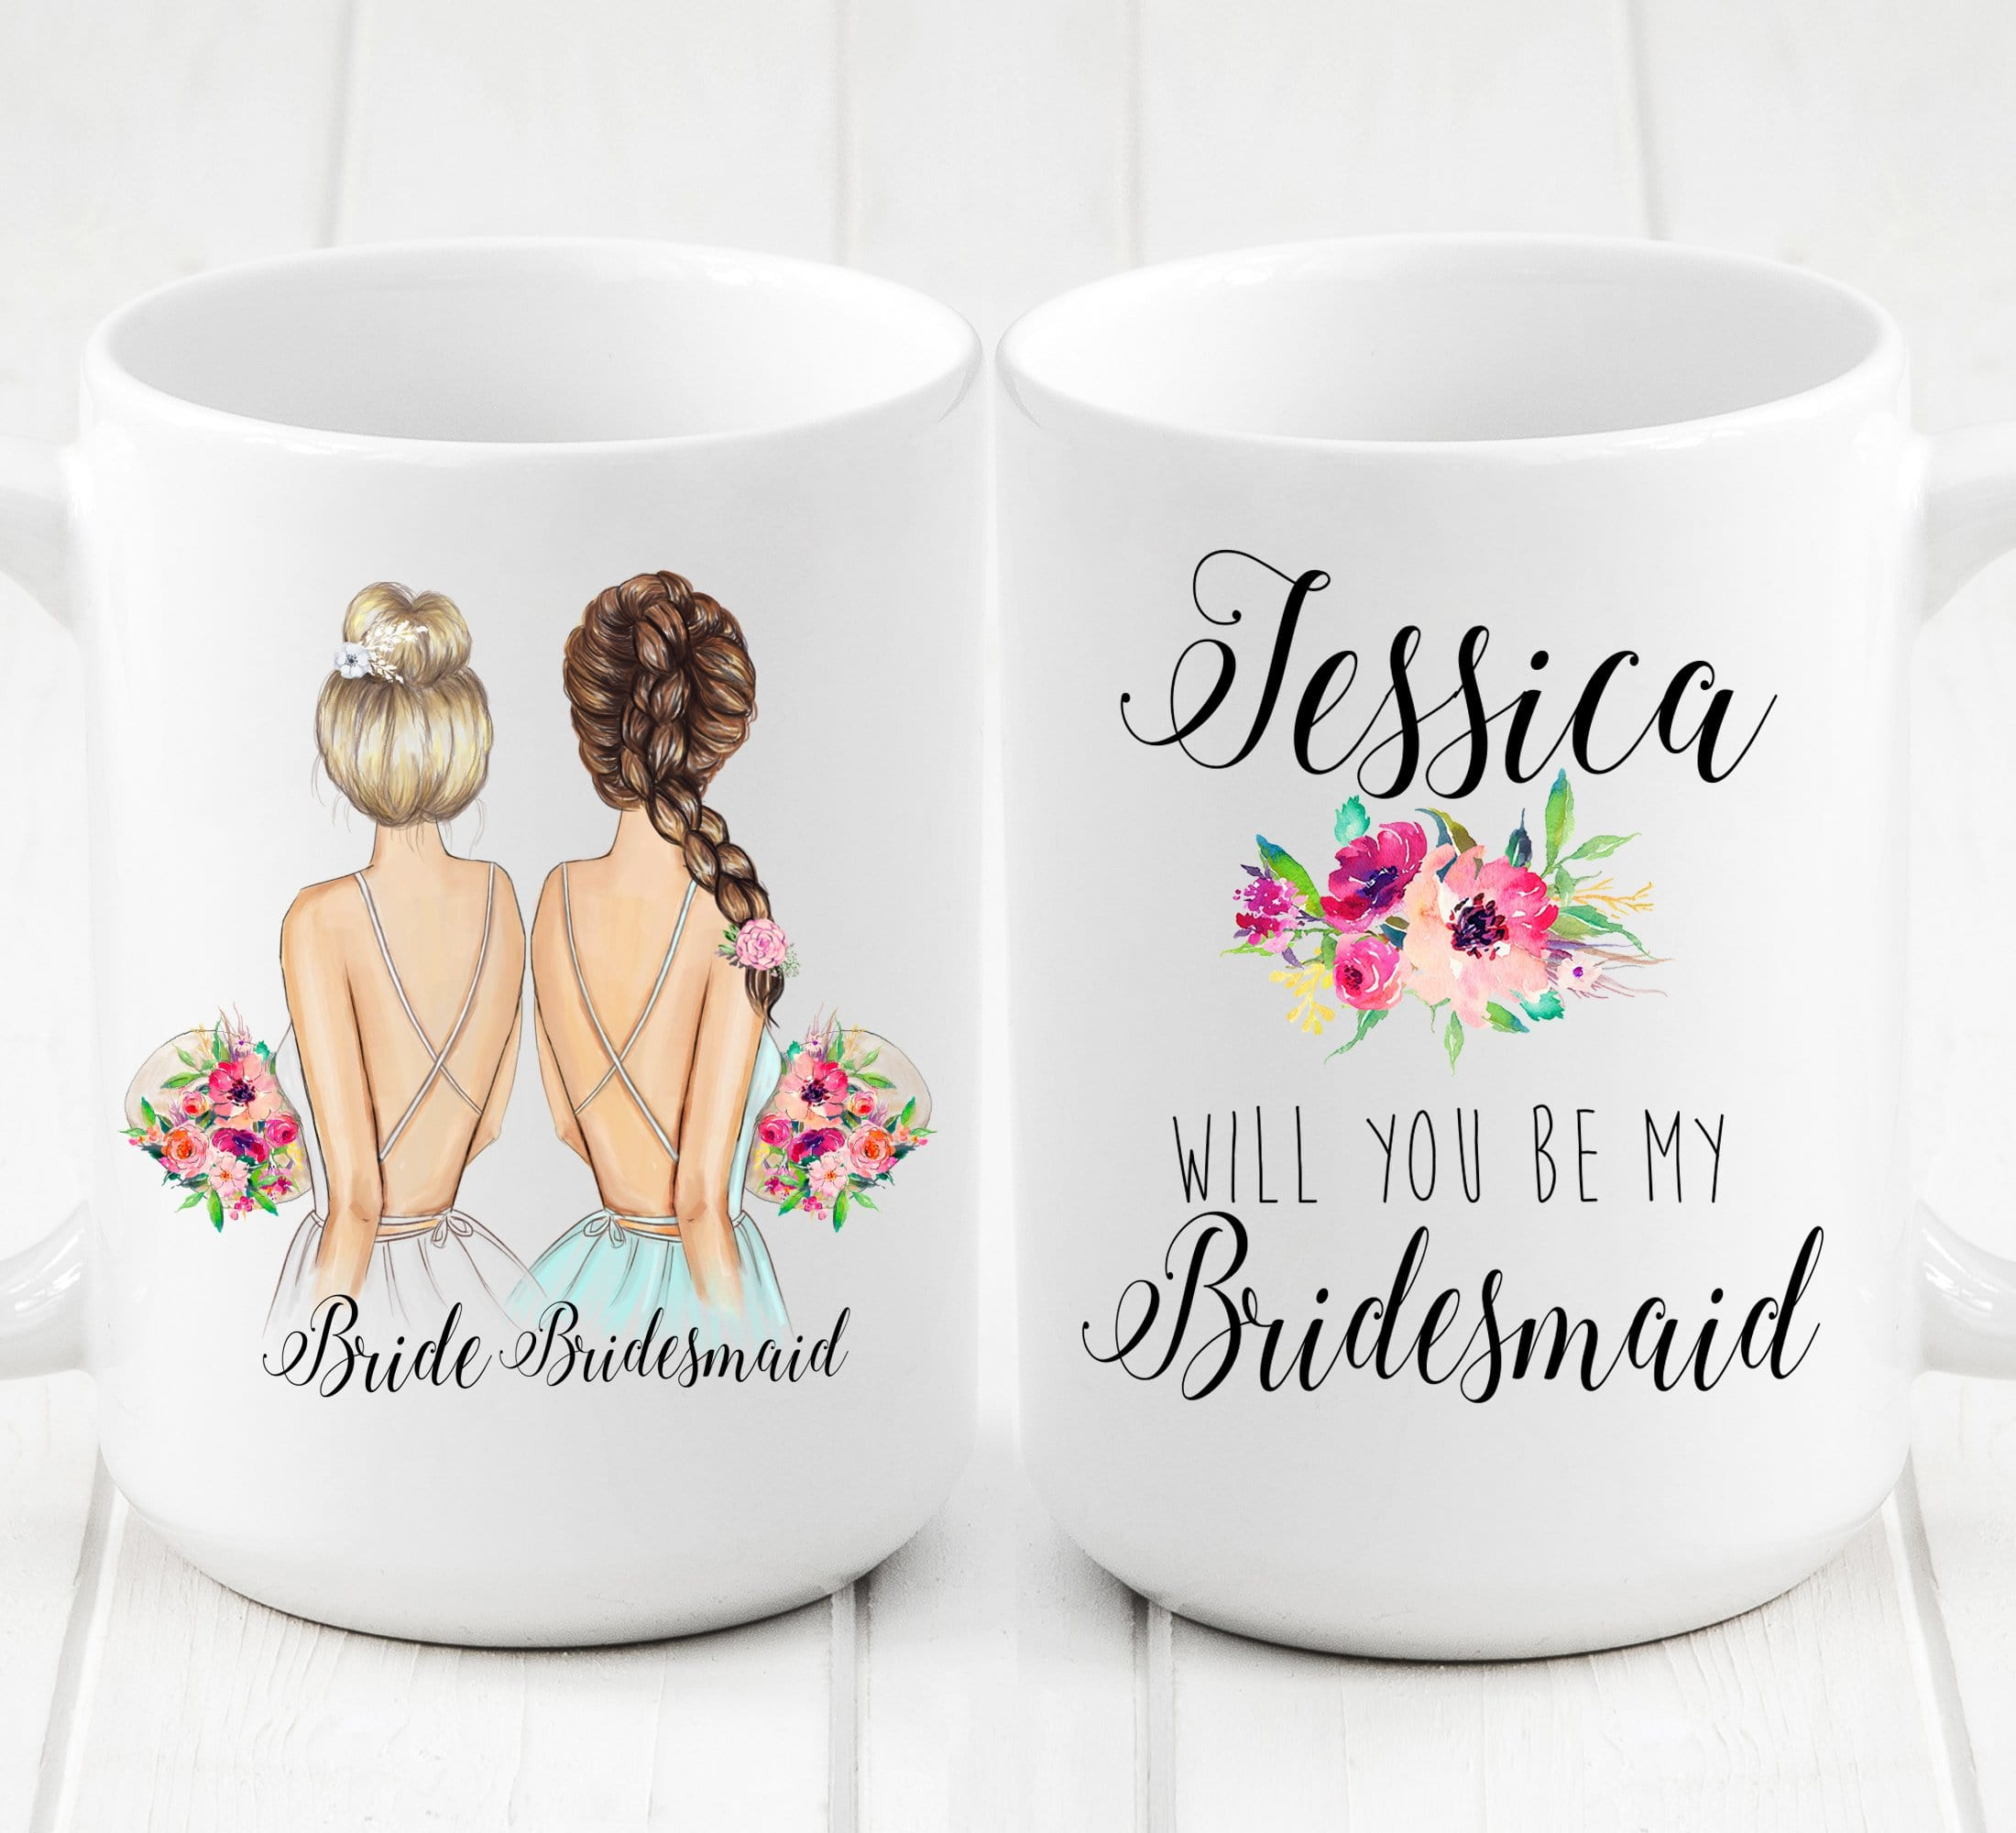 Personalized maid of honor mug wedding party gifts glacelis personalized bridesmaid mug wedding party gifts junglespirit Gallery